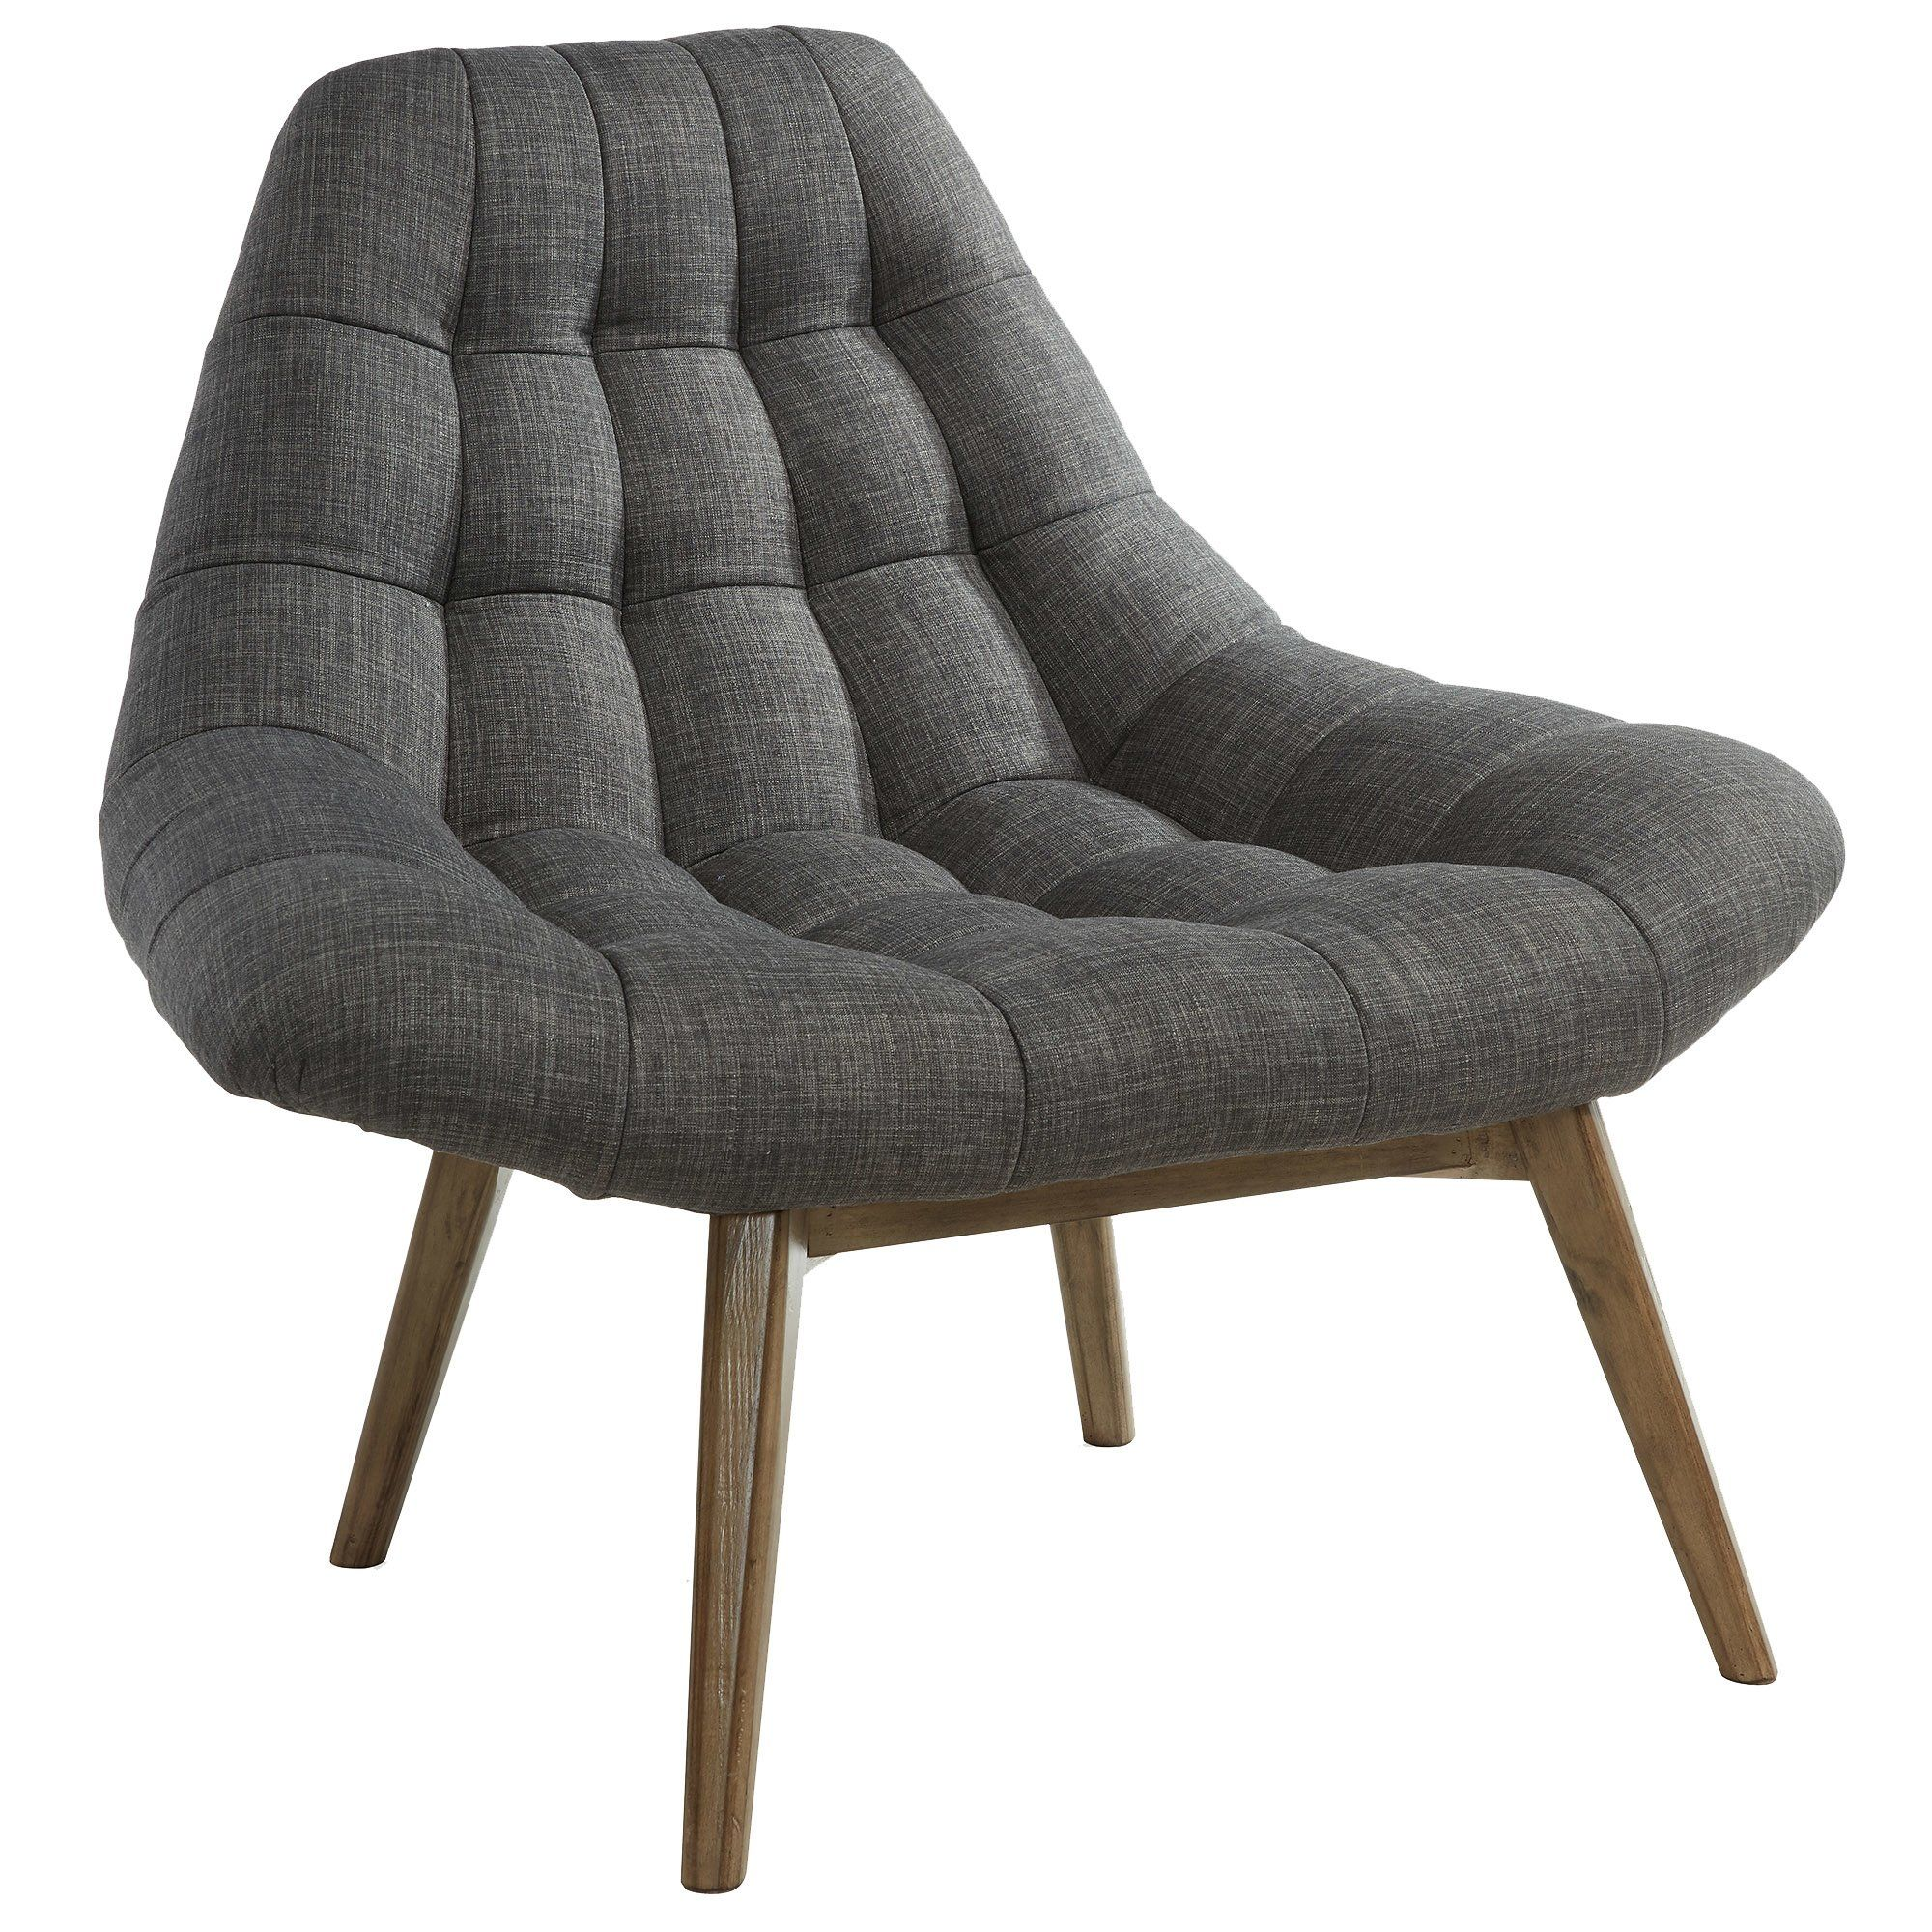 Customer Image Zoomed Fabric lounge chair, Fabric accent